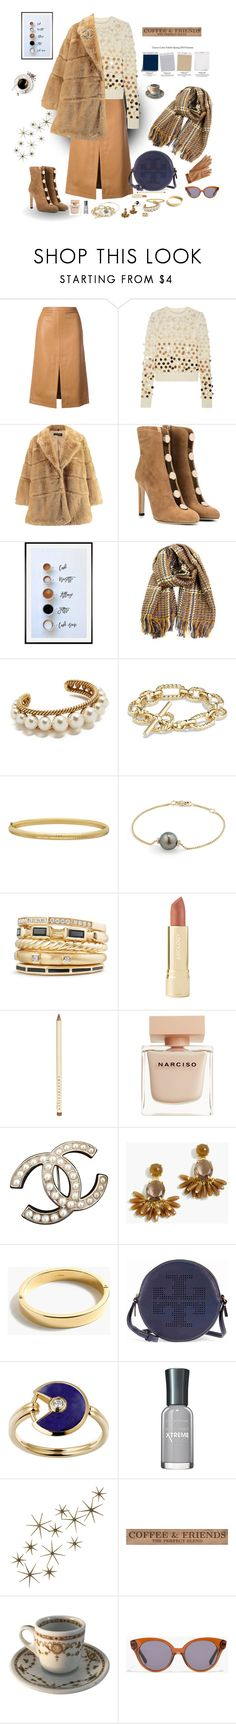 """""""Spring 2018 Pantone colors .. ok but in winter styling"""" by deborah-518 ❤ liked on Polyvore featuring Derek Lam, Marc Jacobs, Jimmy Choo, Pottery Barn, David Yurman, Everlasting Gold, Axiology, Chantecaille, Narciso Rodriguez and Chanel"""